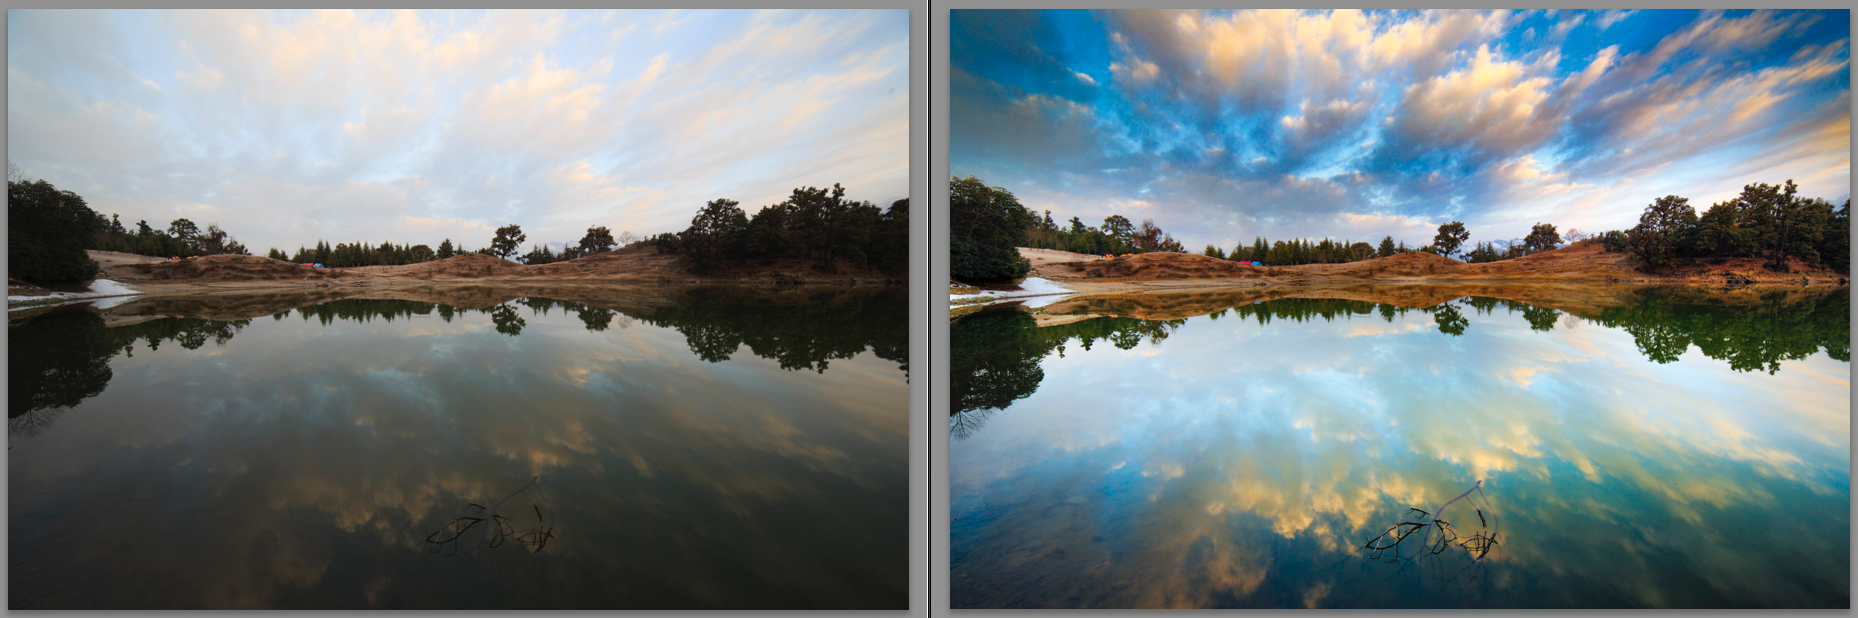 A photo showing the result of post processing in photoshop and Lightroom